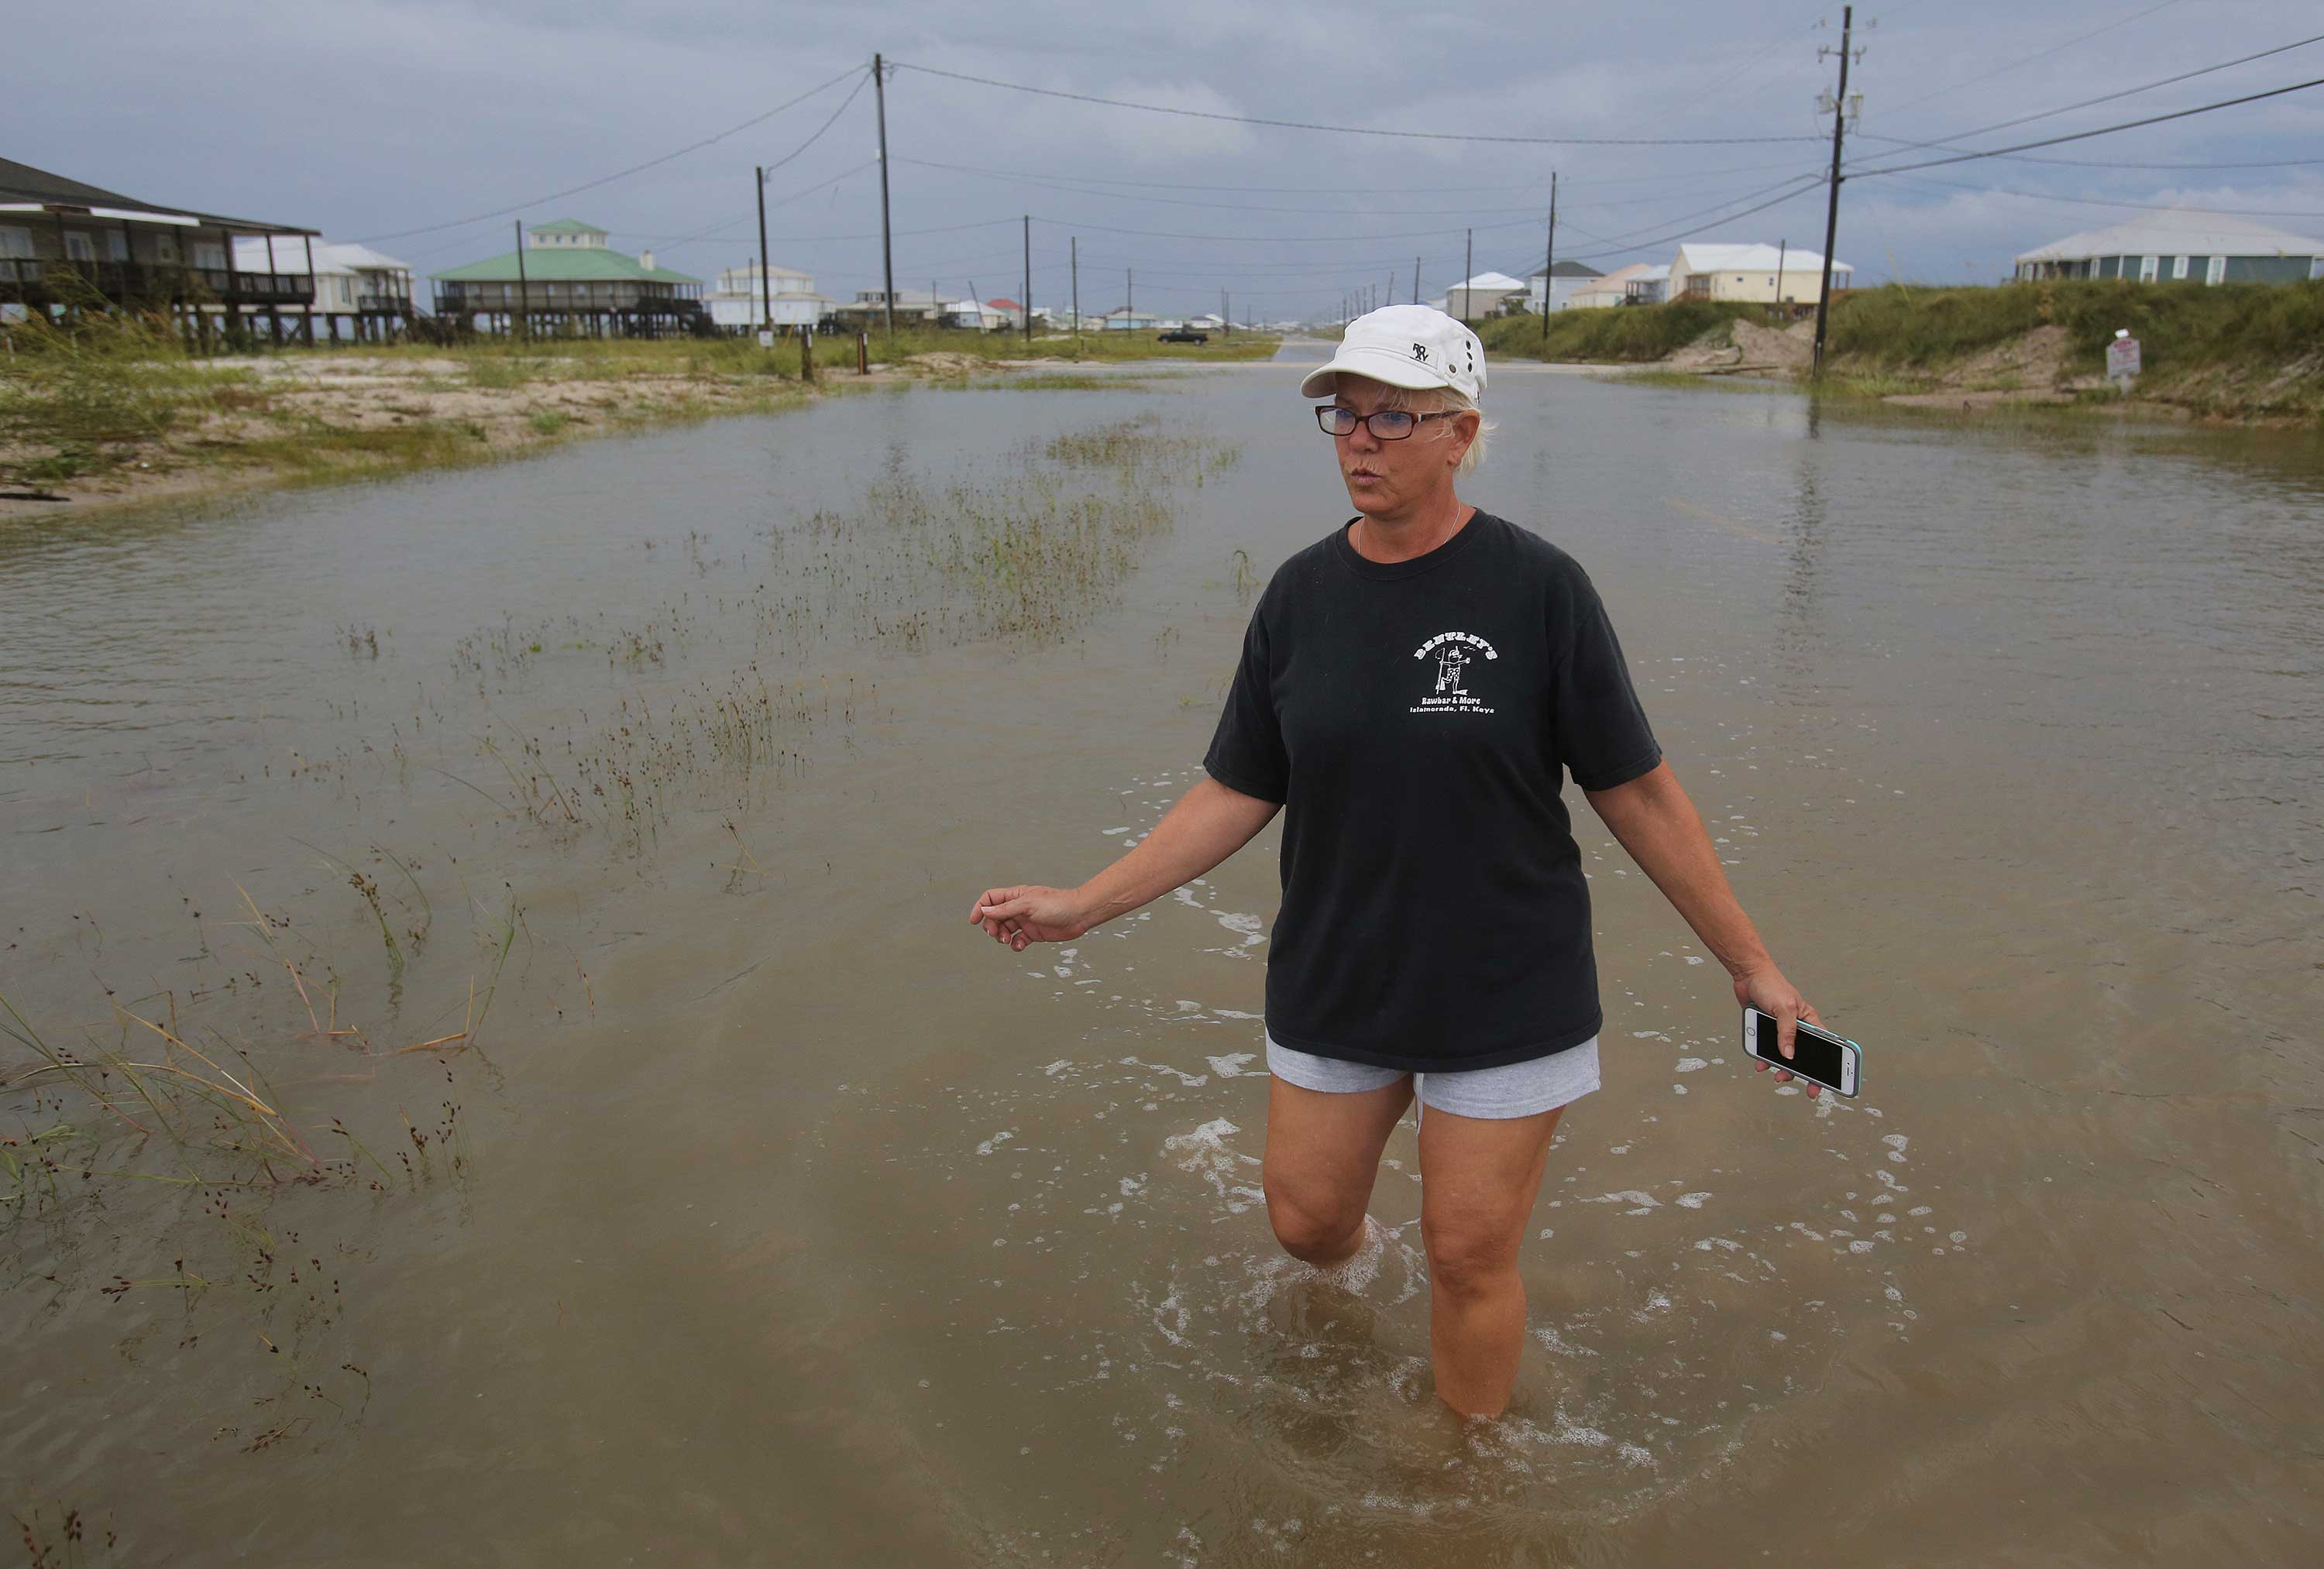 <div class='meta'><div class='origin-logo' data-origin='none'></div><span class='caption-text' data-credit='Dan Anderson/AP Photo'>Susan Jones walks through a flooded road from Tropical Storm Gordon, Wednesday, Sept. 5, 2018, in Dauphin Island, Ala.</span></div>